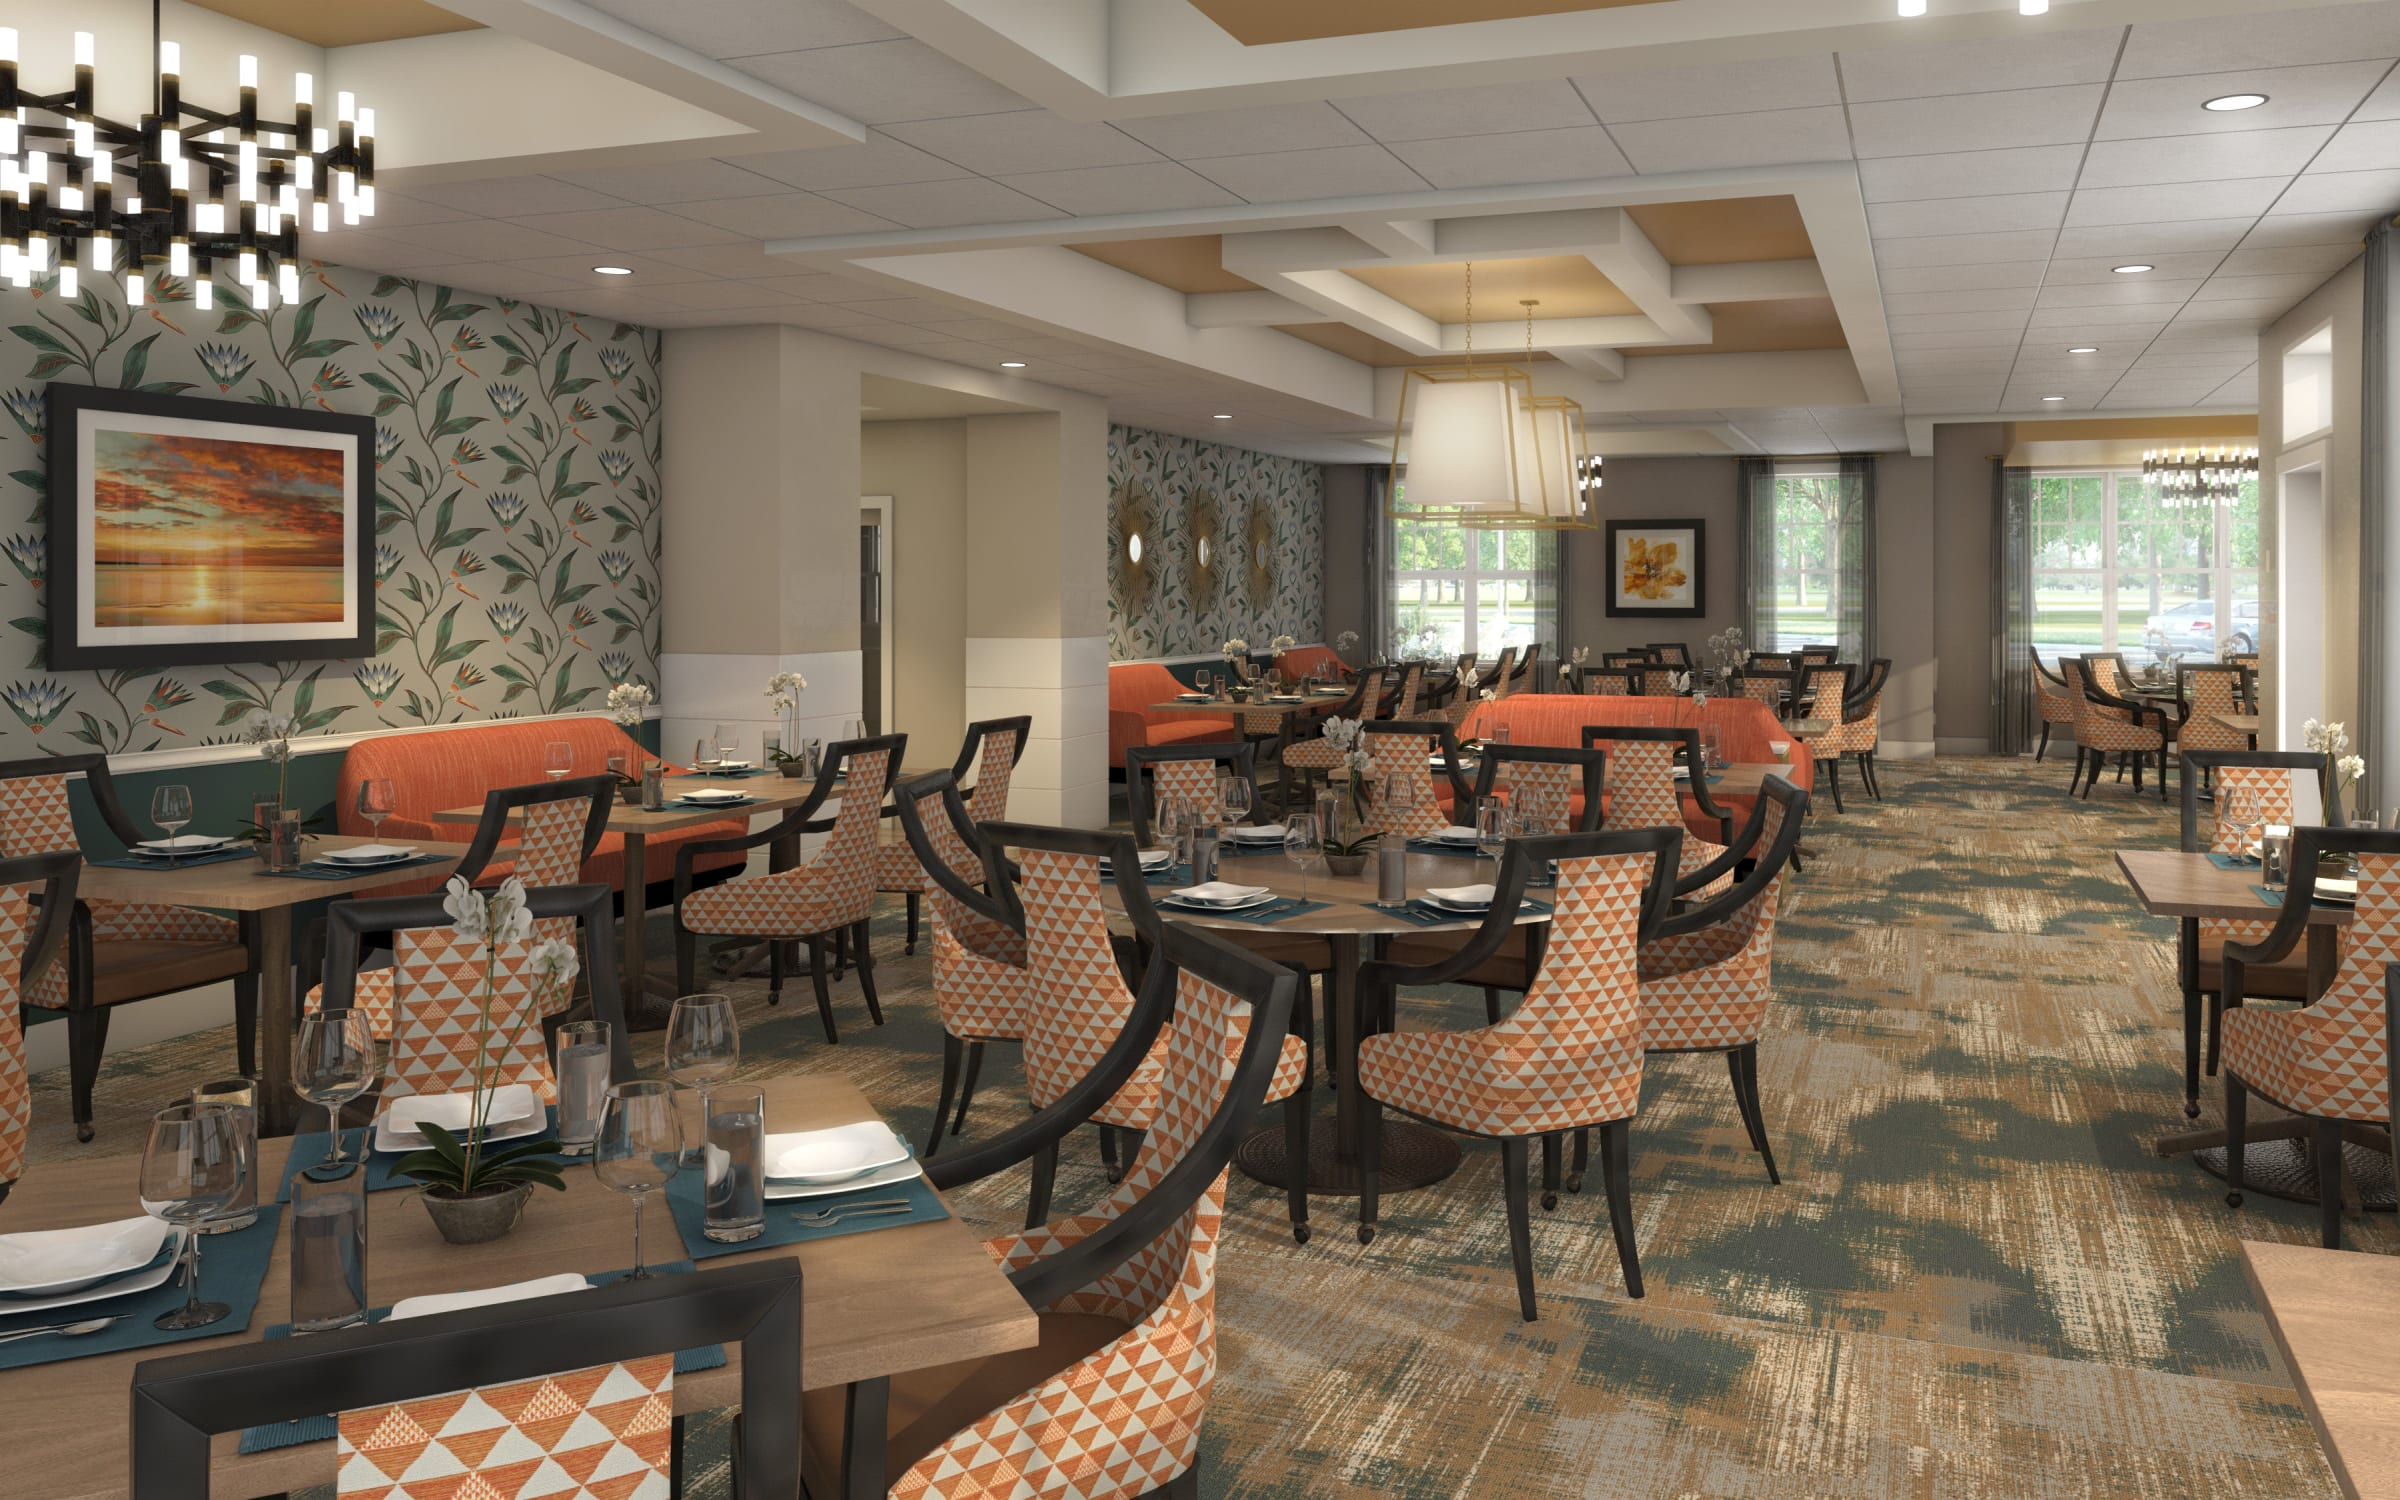 Services and amenities at Anthology of Farmington Hills in Farmington Hills, Michigan